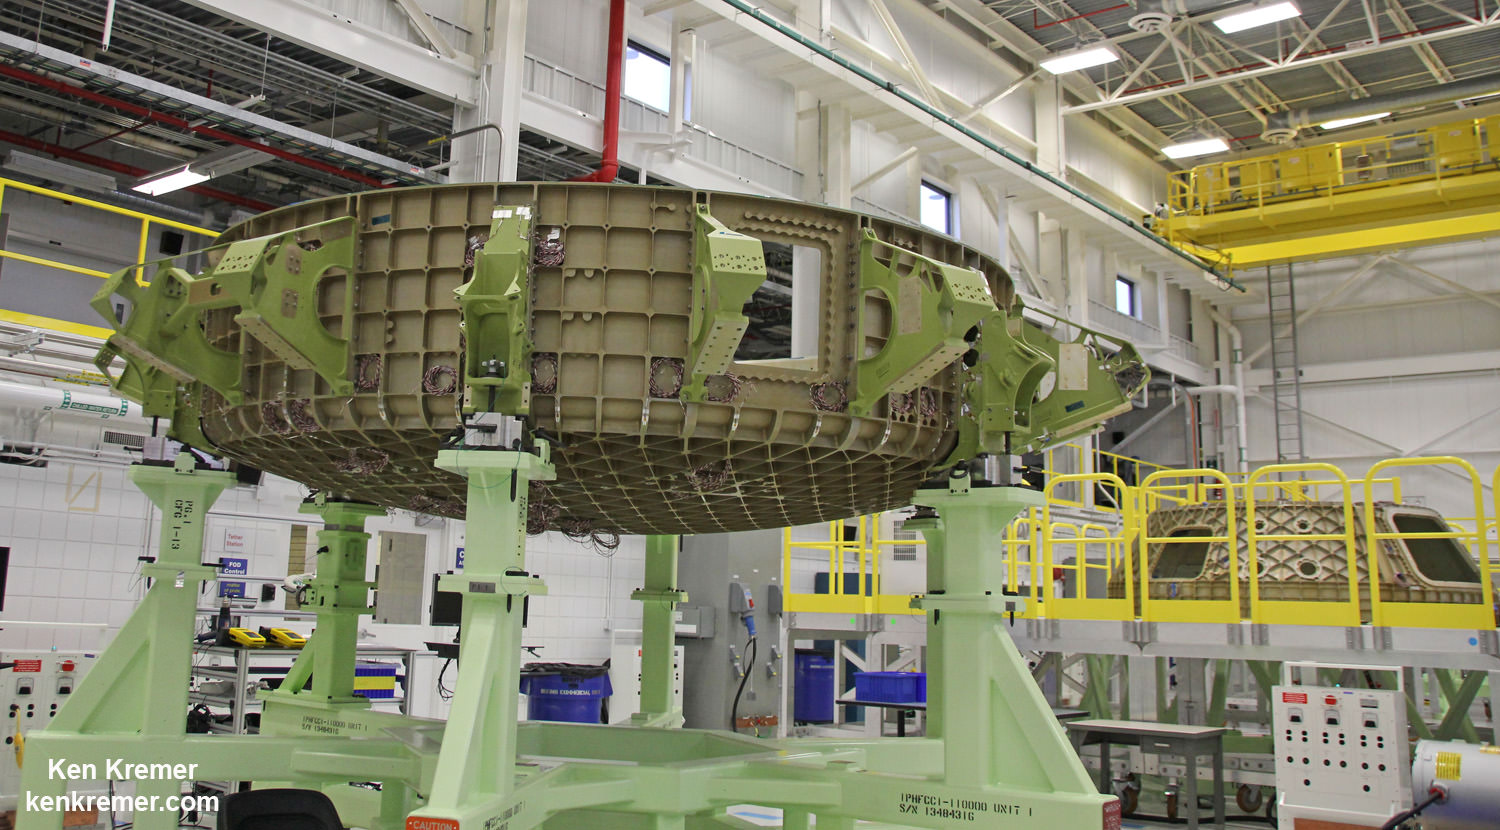 First view of the Boeing CST-100 '?Starliner?' crewed space taxi at the Sept. 4, 2015 Grand Opening ceremony held in the totally refurbished C3PF manufacturing facility at NASA's Kennedy Space Center. These are the upper and lower segments of the first Starliner crew module known as the Structural Test Article (STA) being built at Boeing's Commercial Crew and Cargo Processing Facility (C3PF) at KSC. Credit: Ken Kremer /kenkremer.com